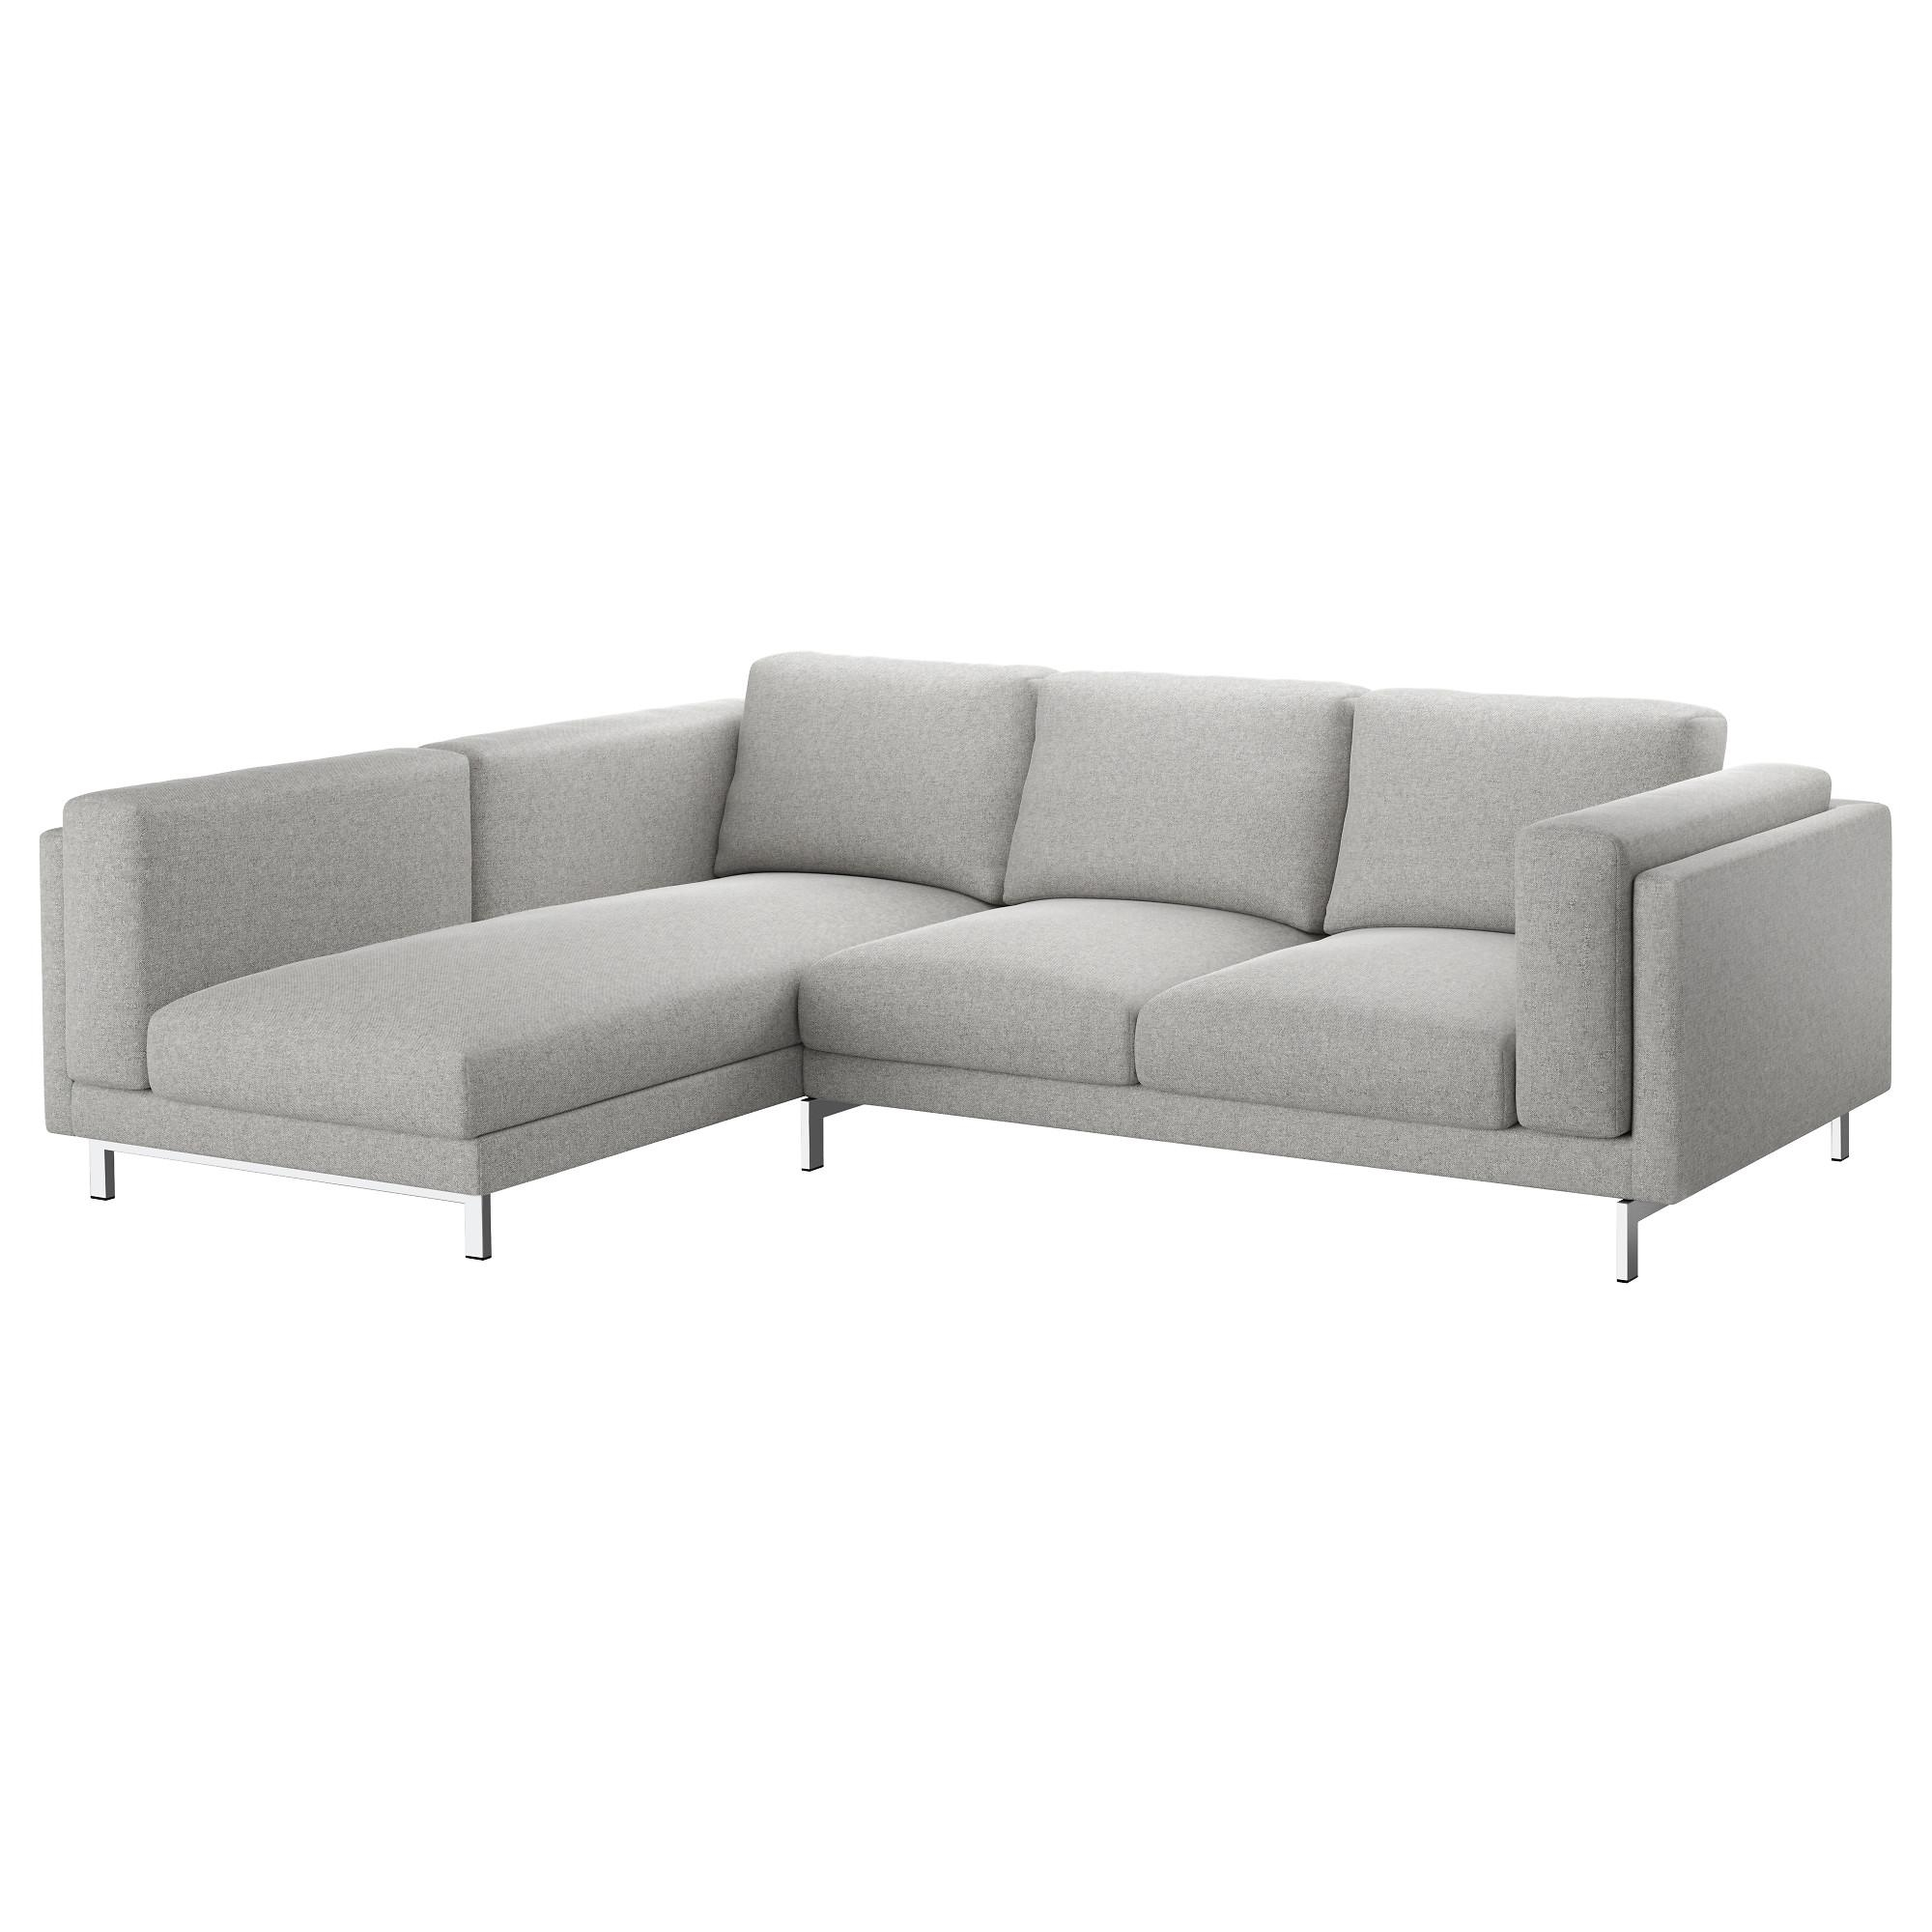 Nockeby 3 Seat Sofa With Chaise Longue, Left/tallmyra White/black With Regard To Ikea Chaise Lounge Sofa (View 8 of 20)